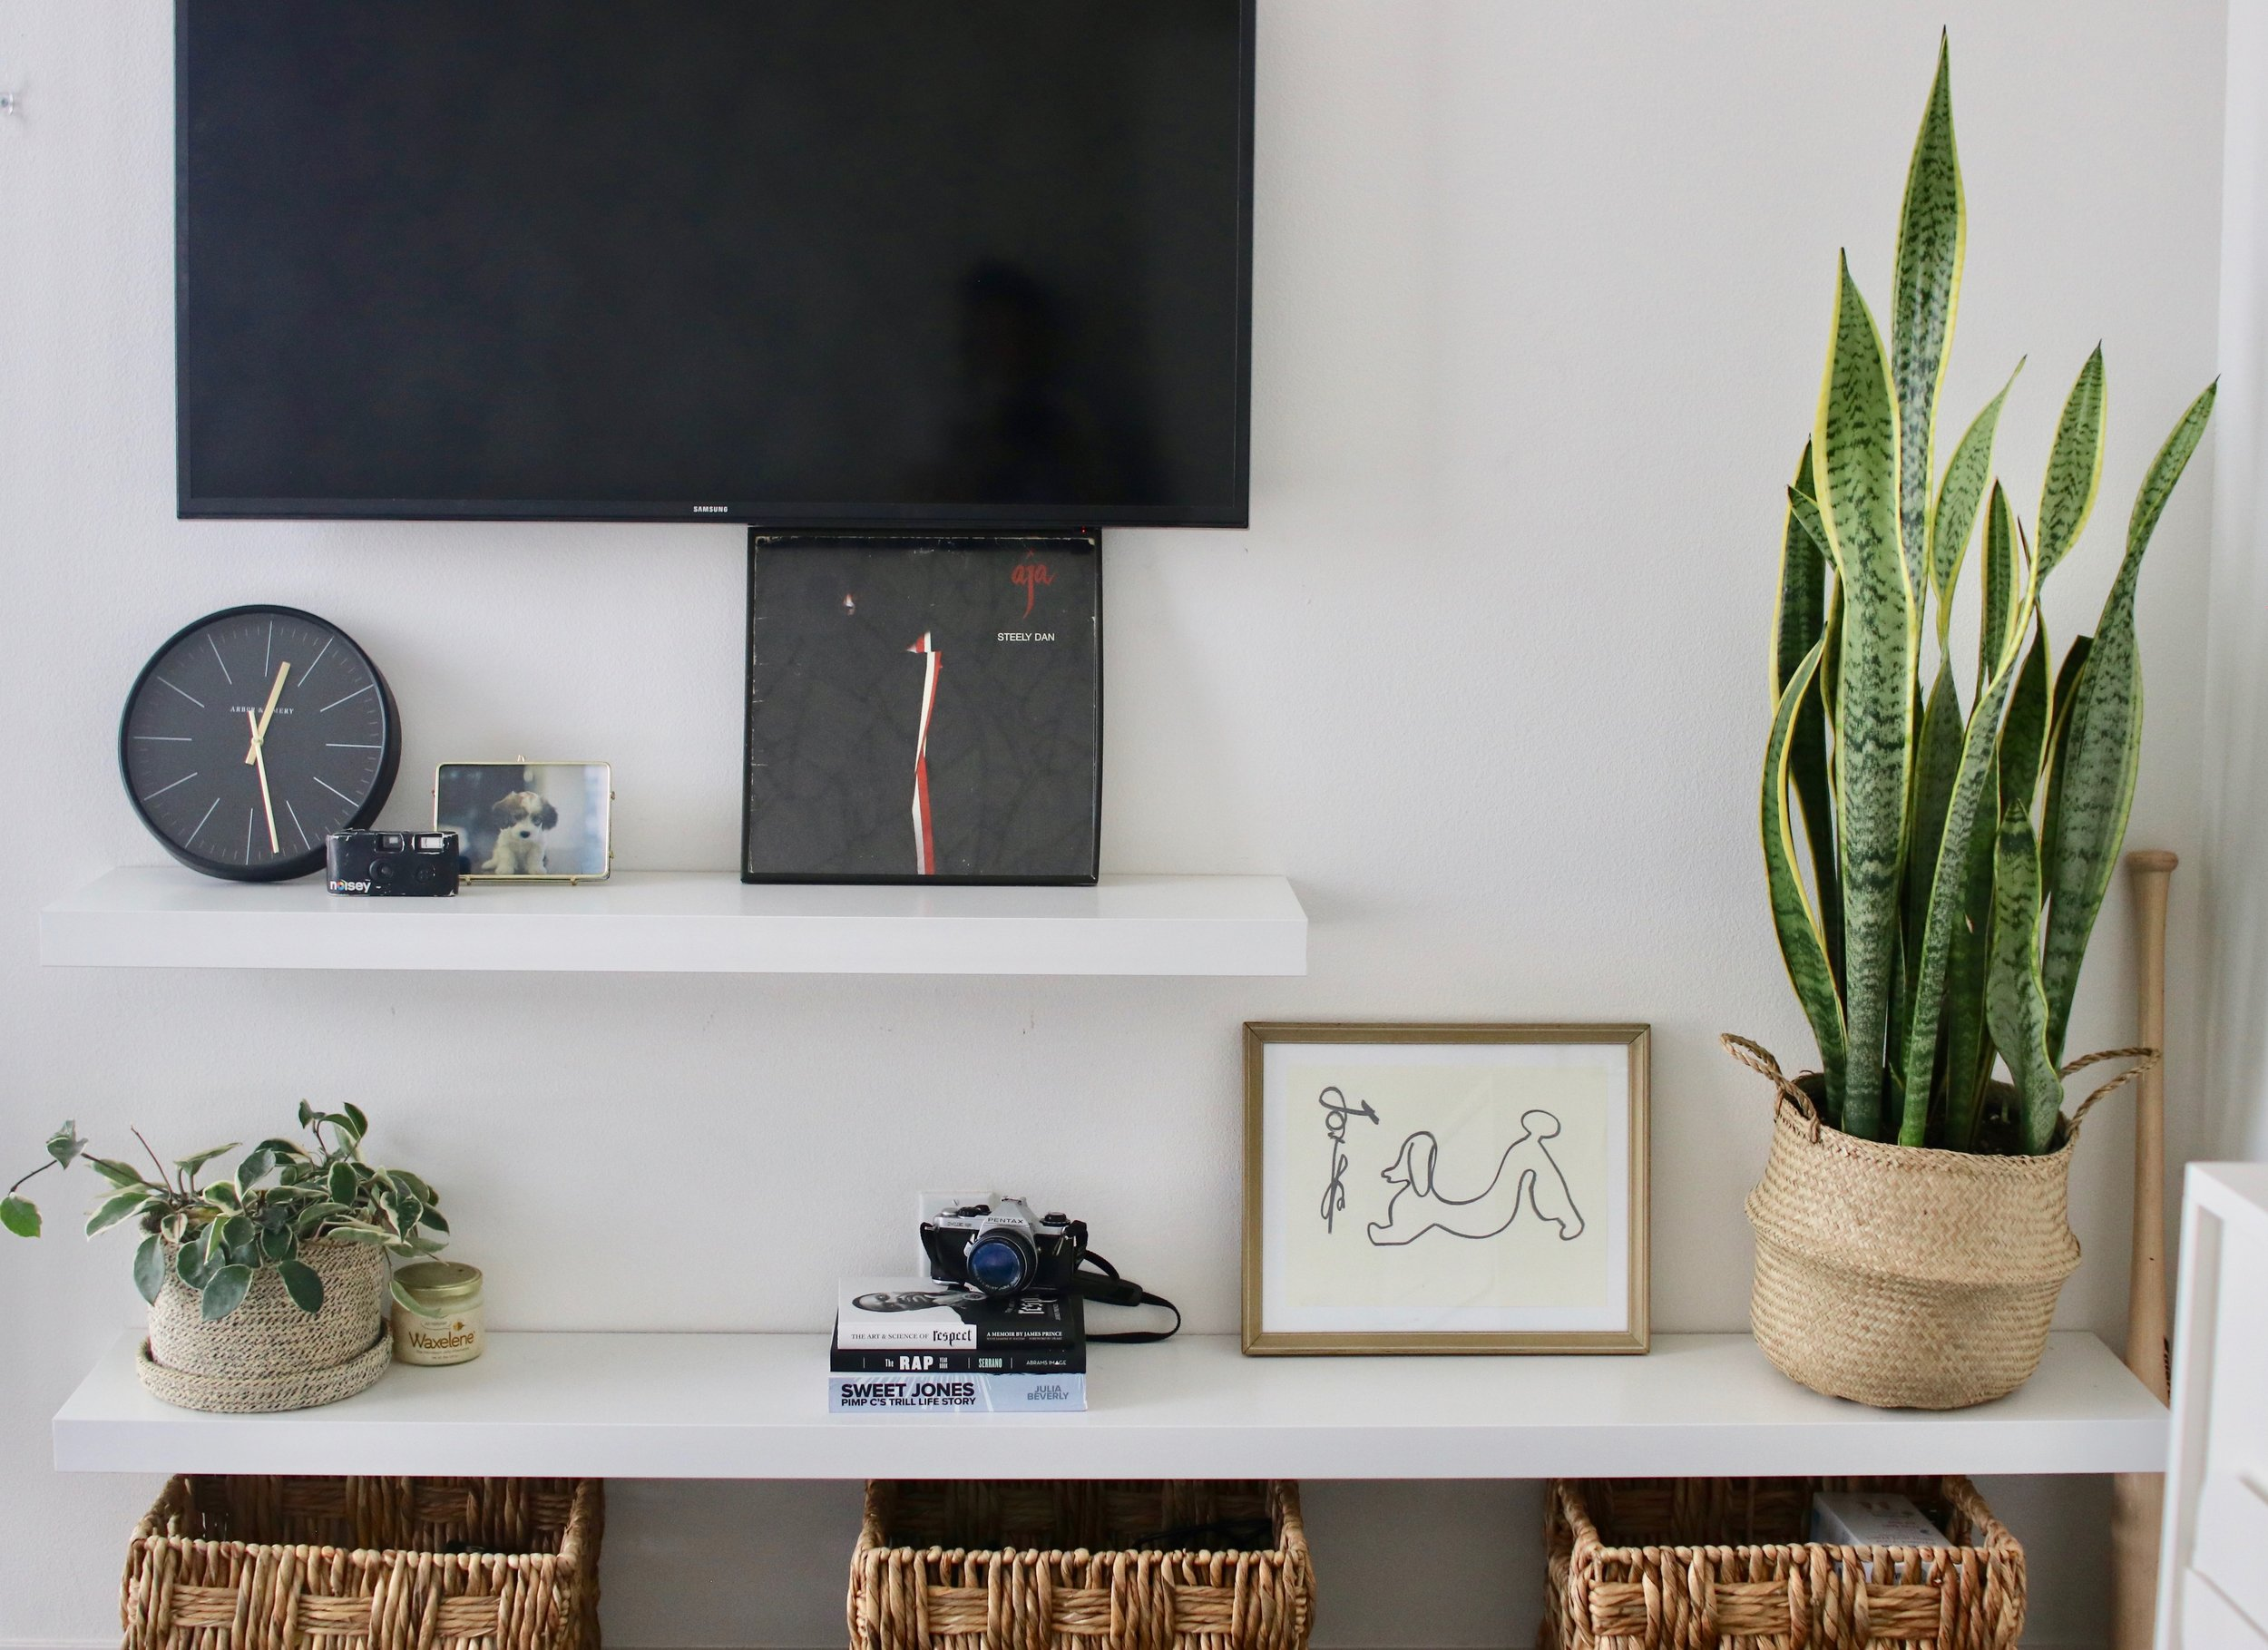 Clean shelves with various art, TV and plants.